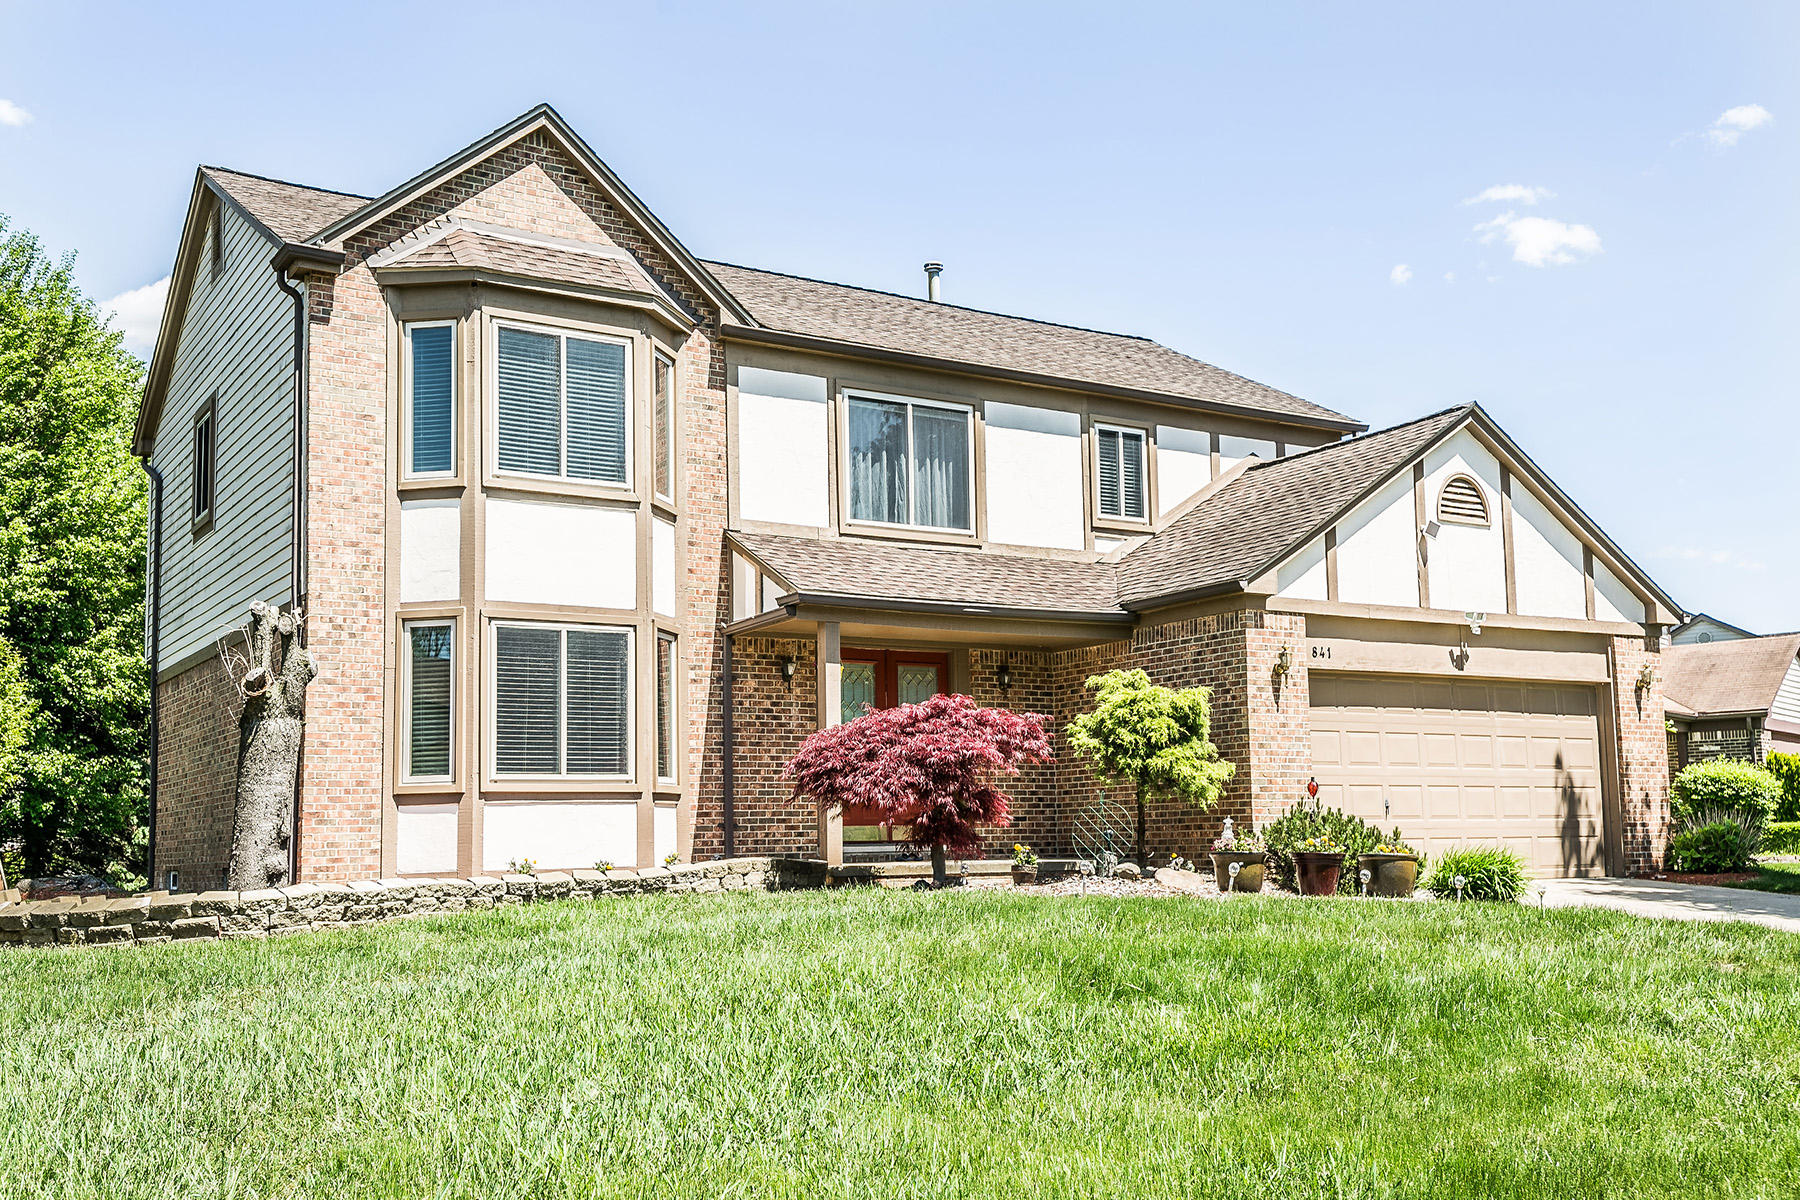 Single Family Homes for Sale at Rochester Hills 841 Lion Street Rochester Hills, Michigan 48307 United States